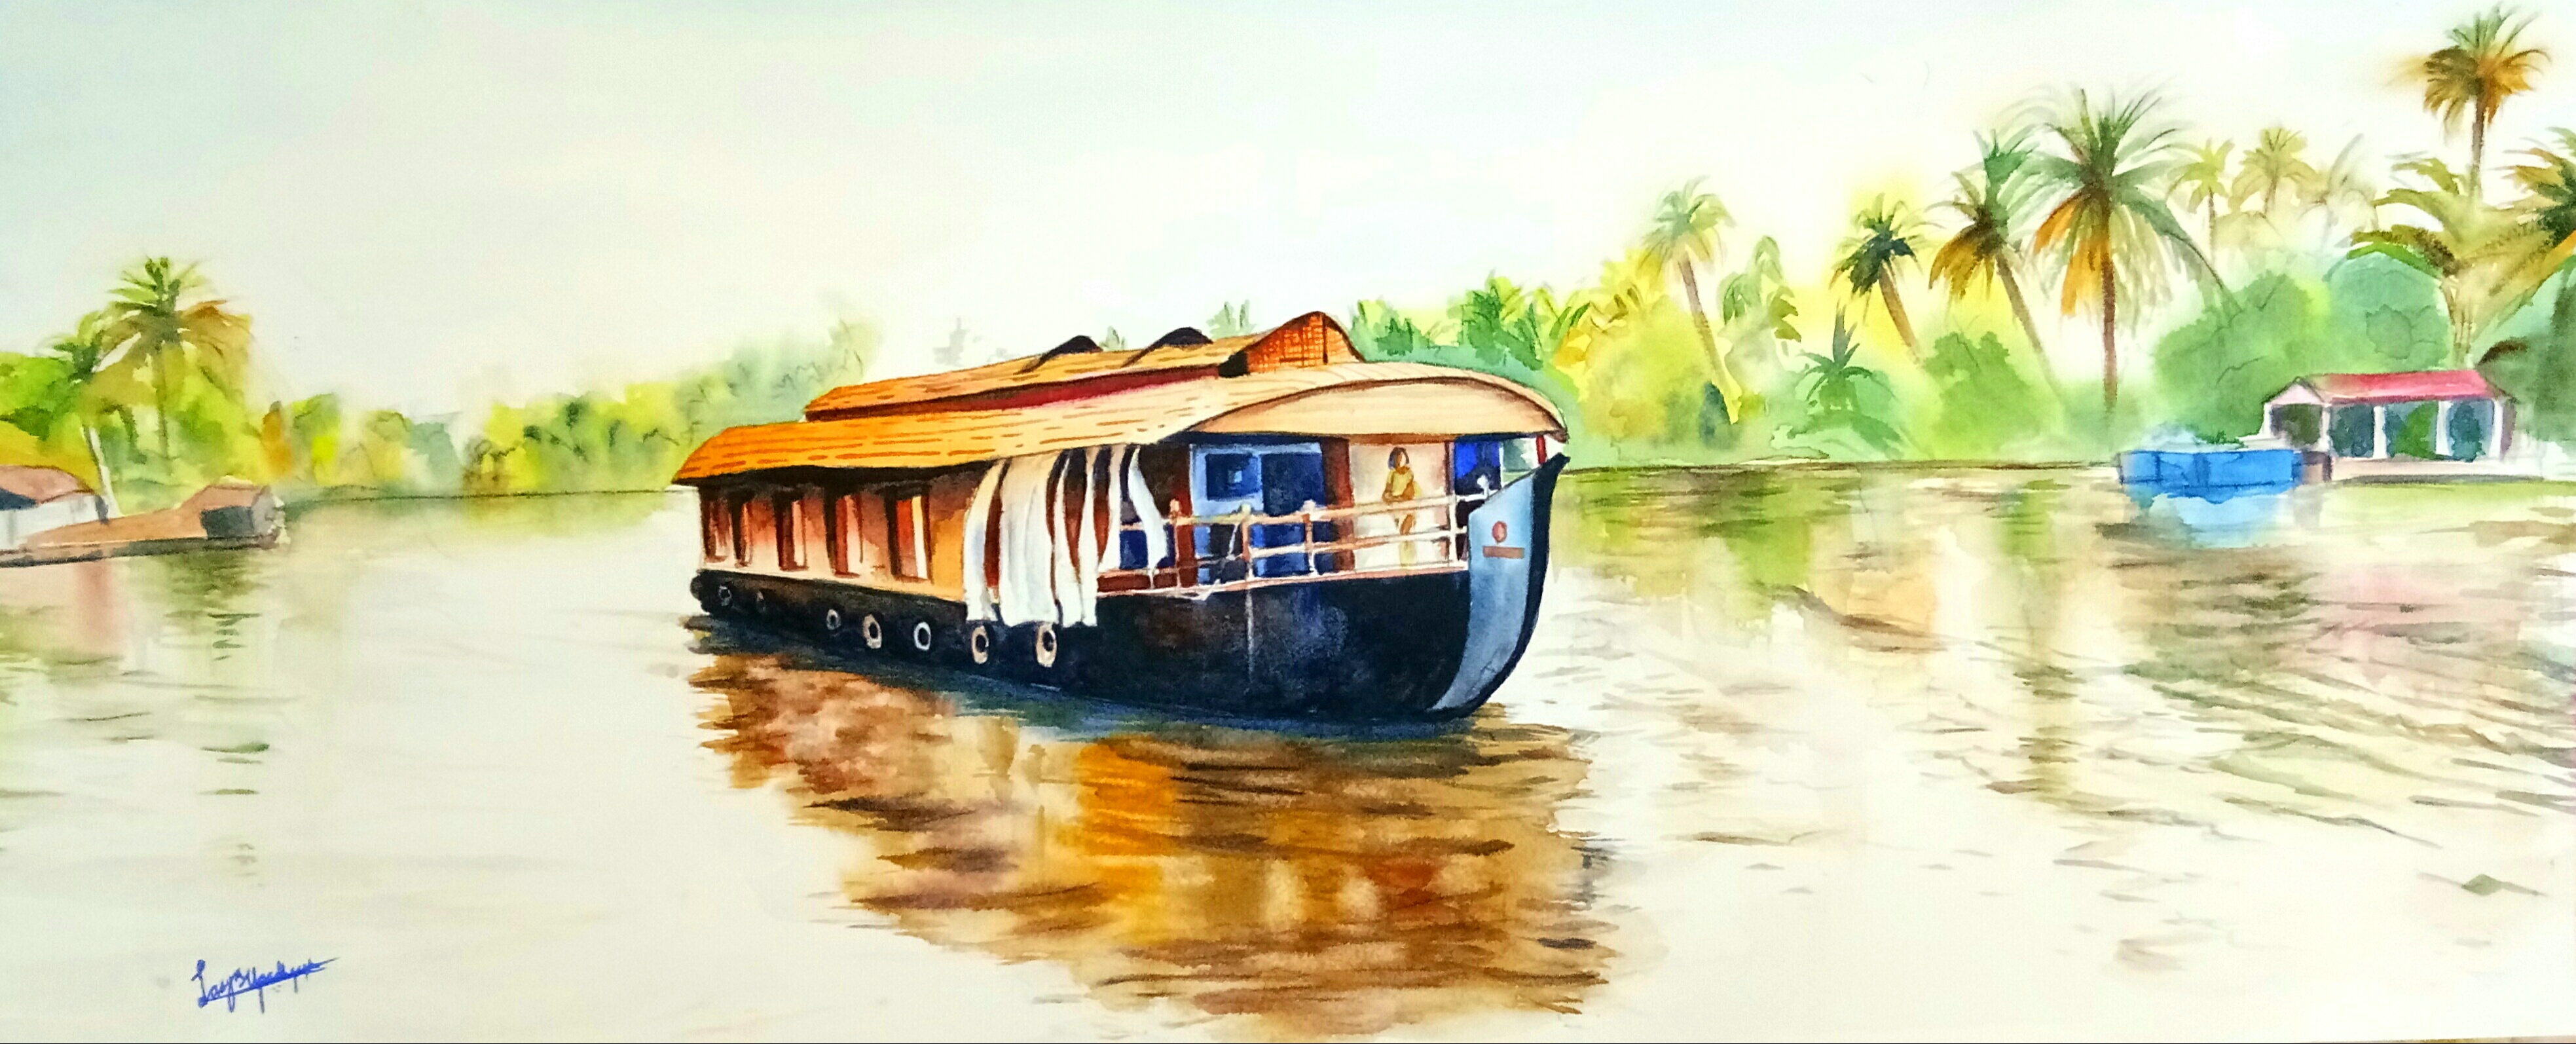 Cruising the backwaters 13845